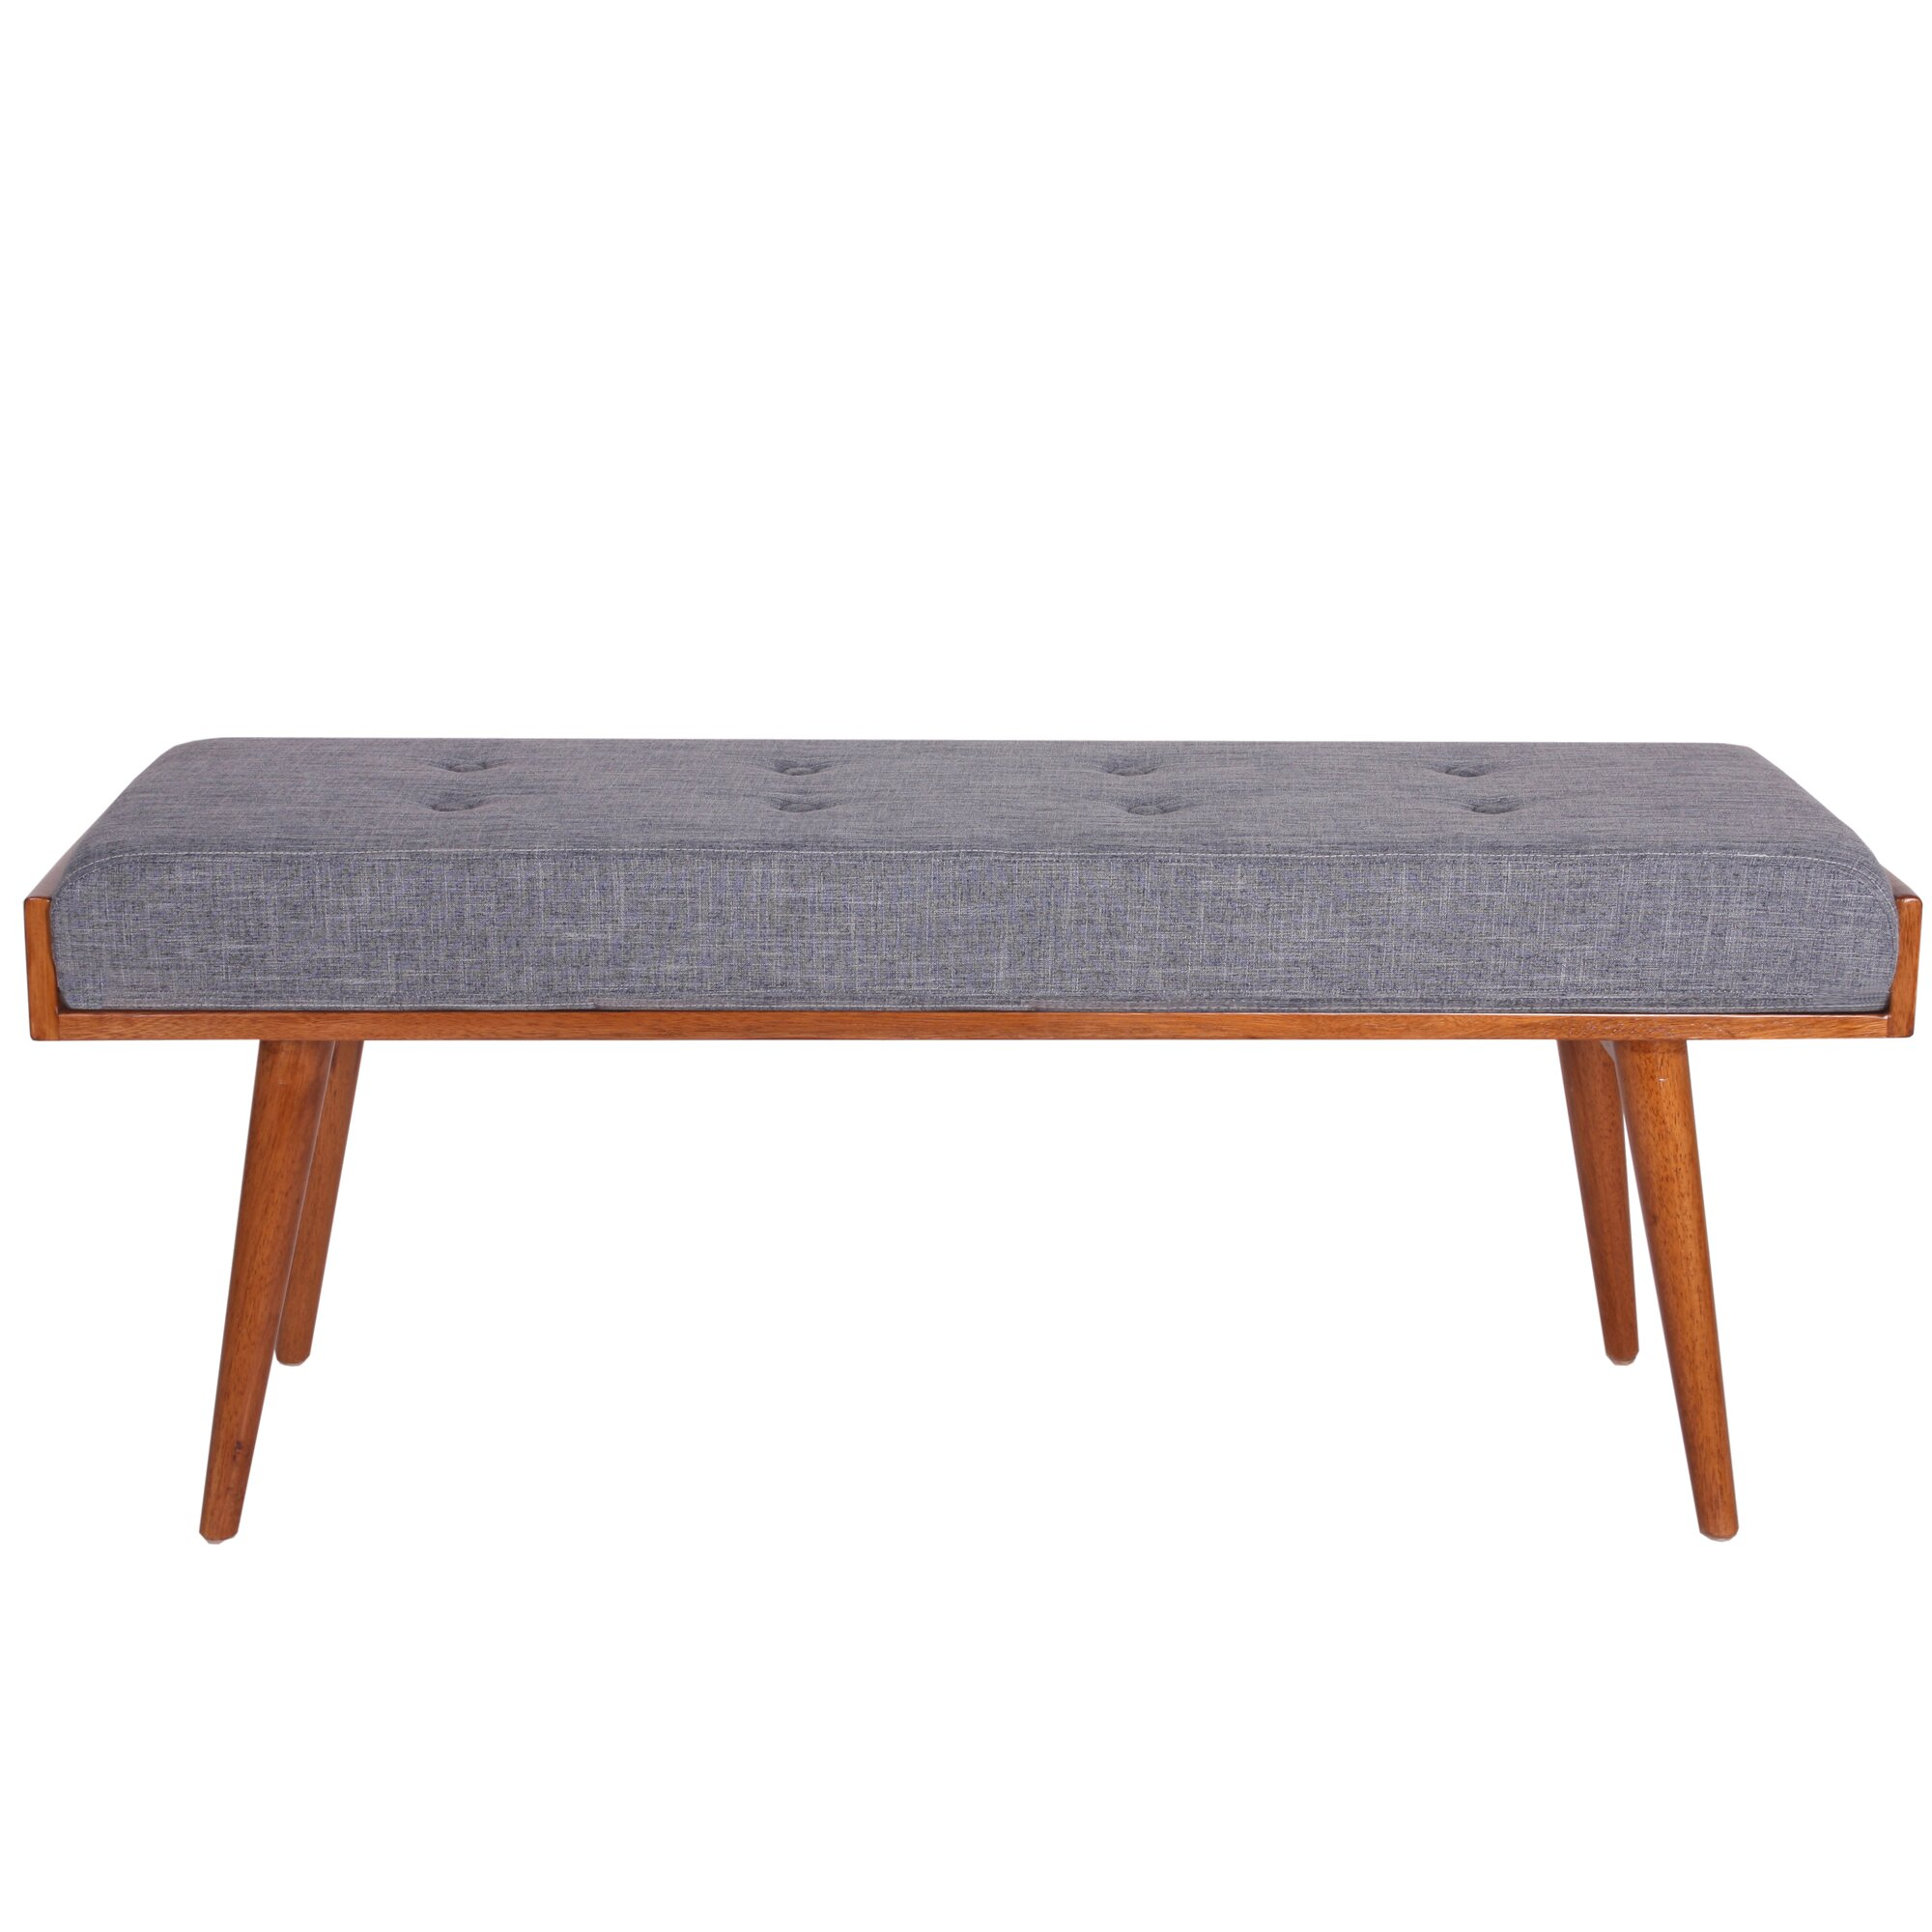 Bedroom bench dimensions - Aysel Upholstered Bedroom Bench